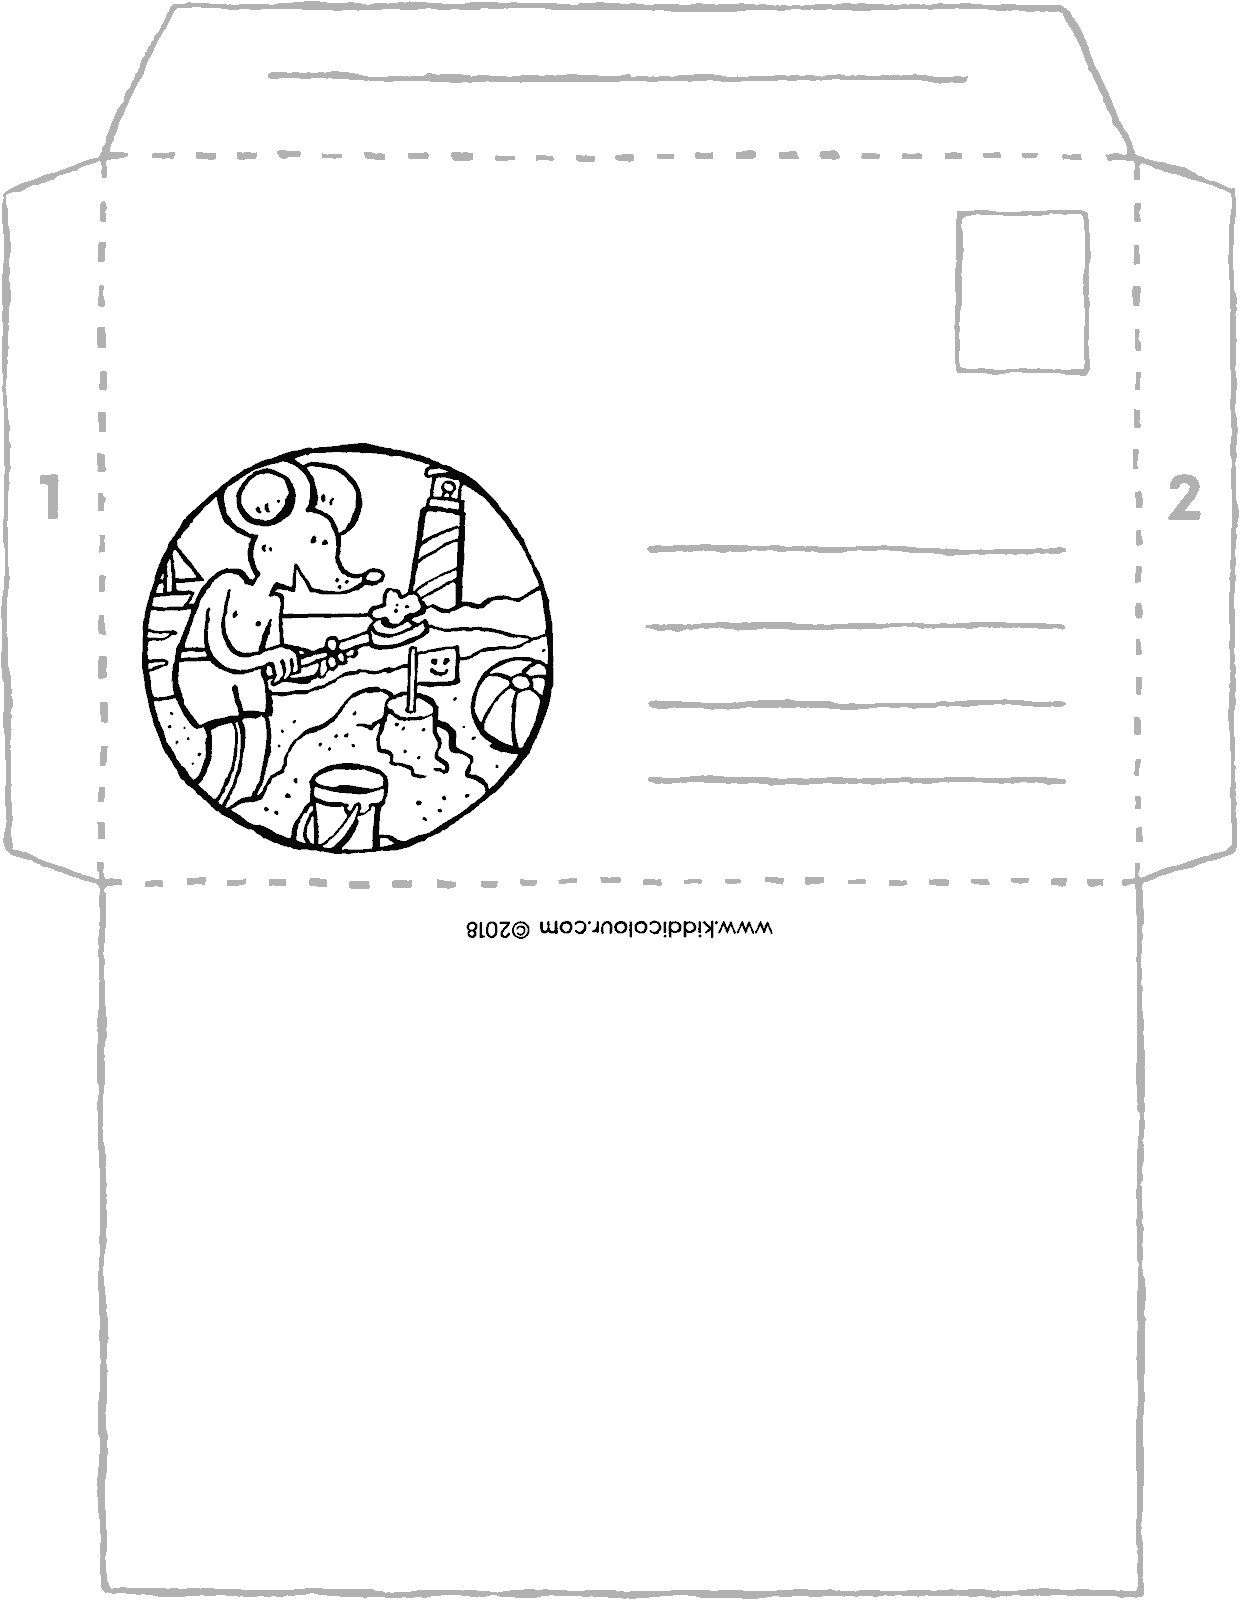 summer holiday envelope colouring page drawing picture 01V